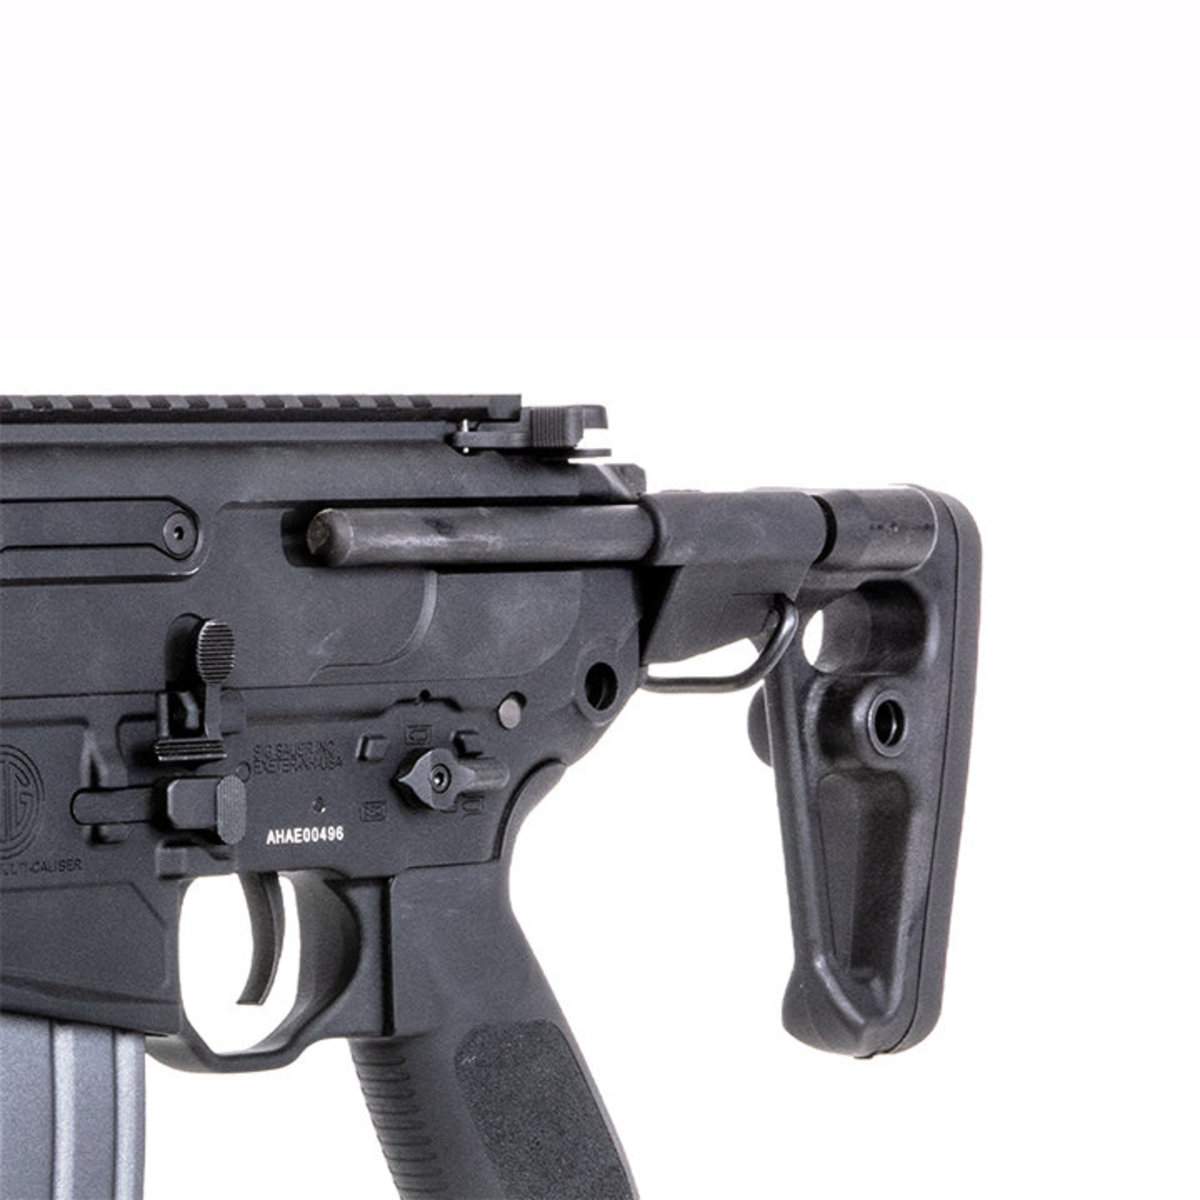 View larger image of Sig Sauer ProForce MCX Virtus AEG Rifle